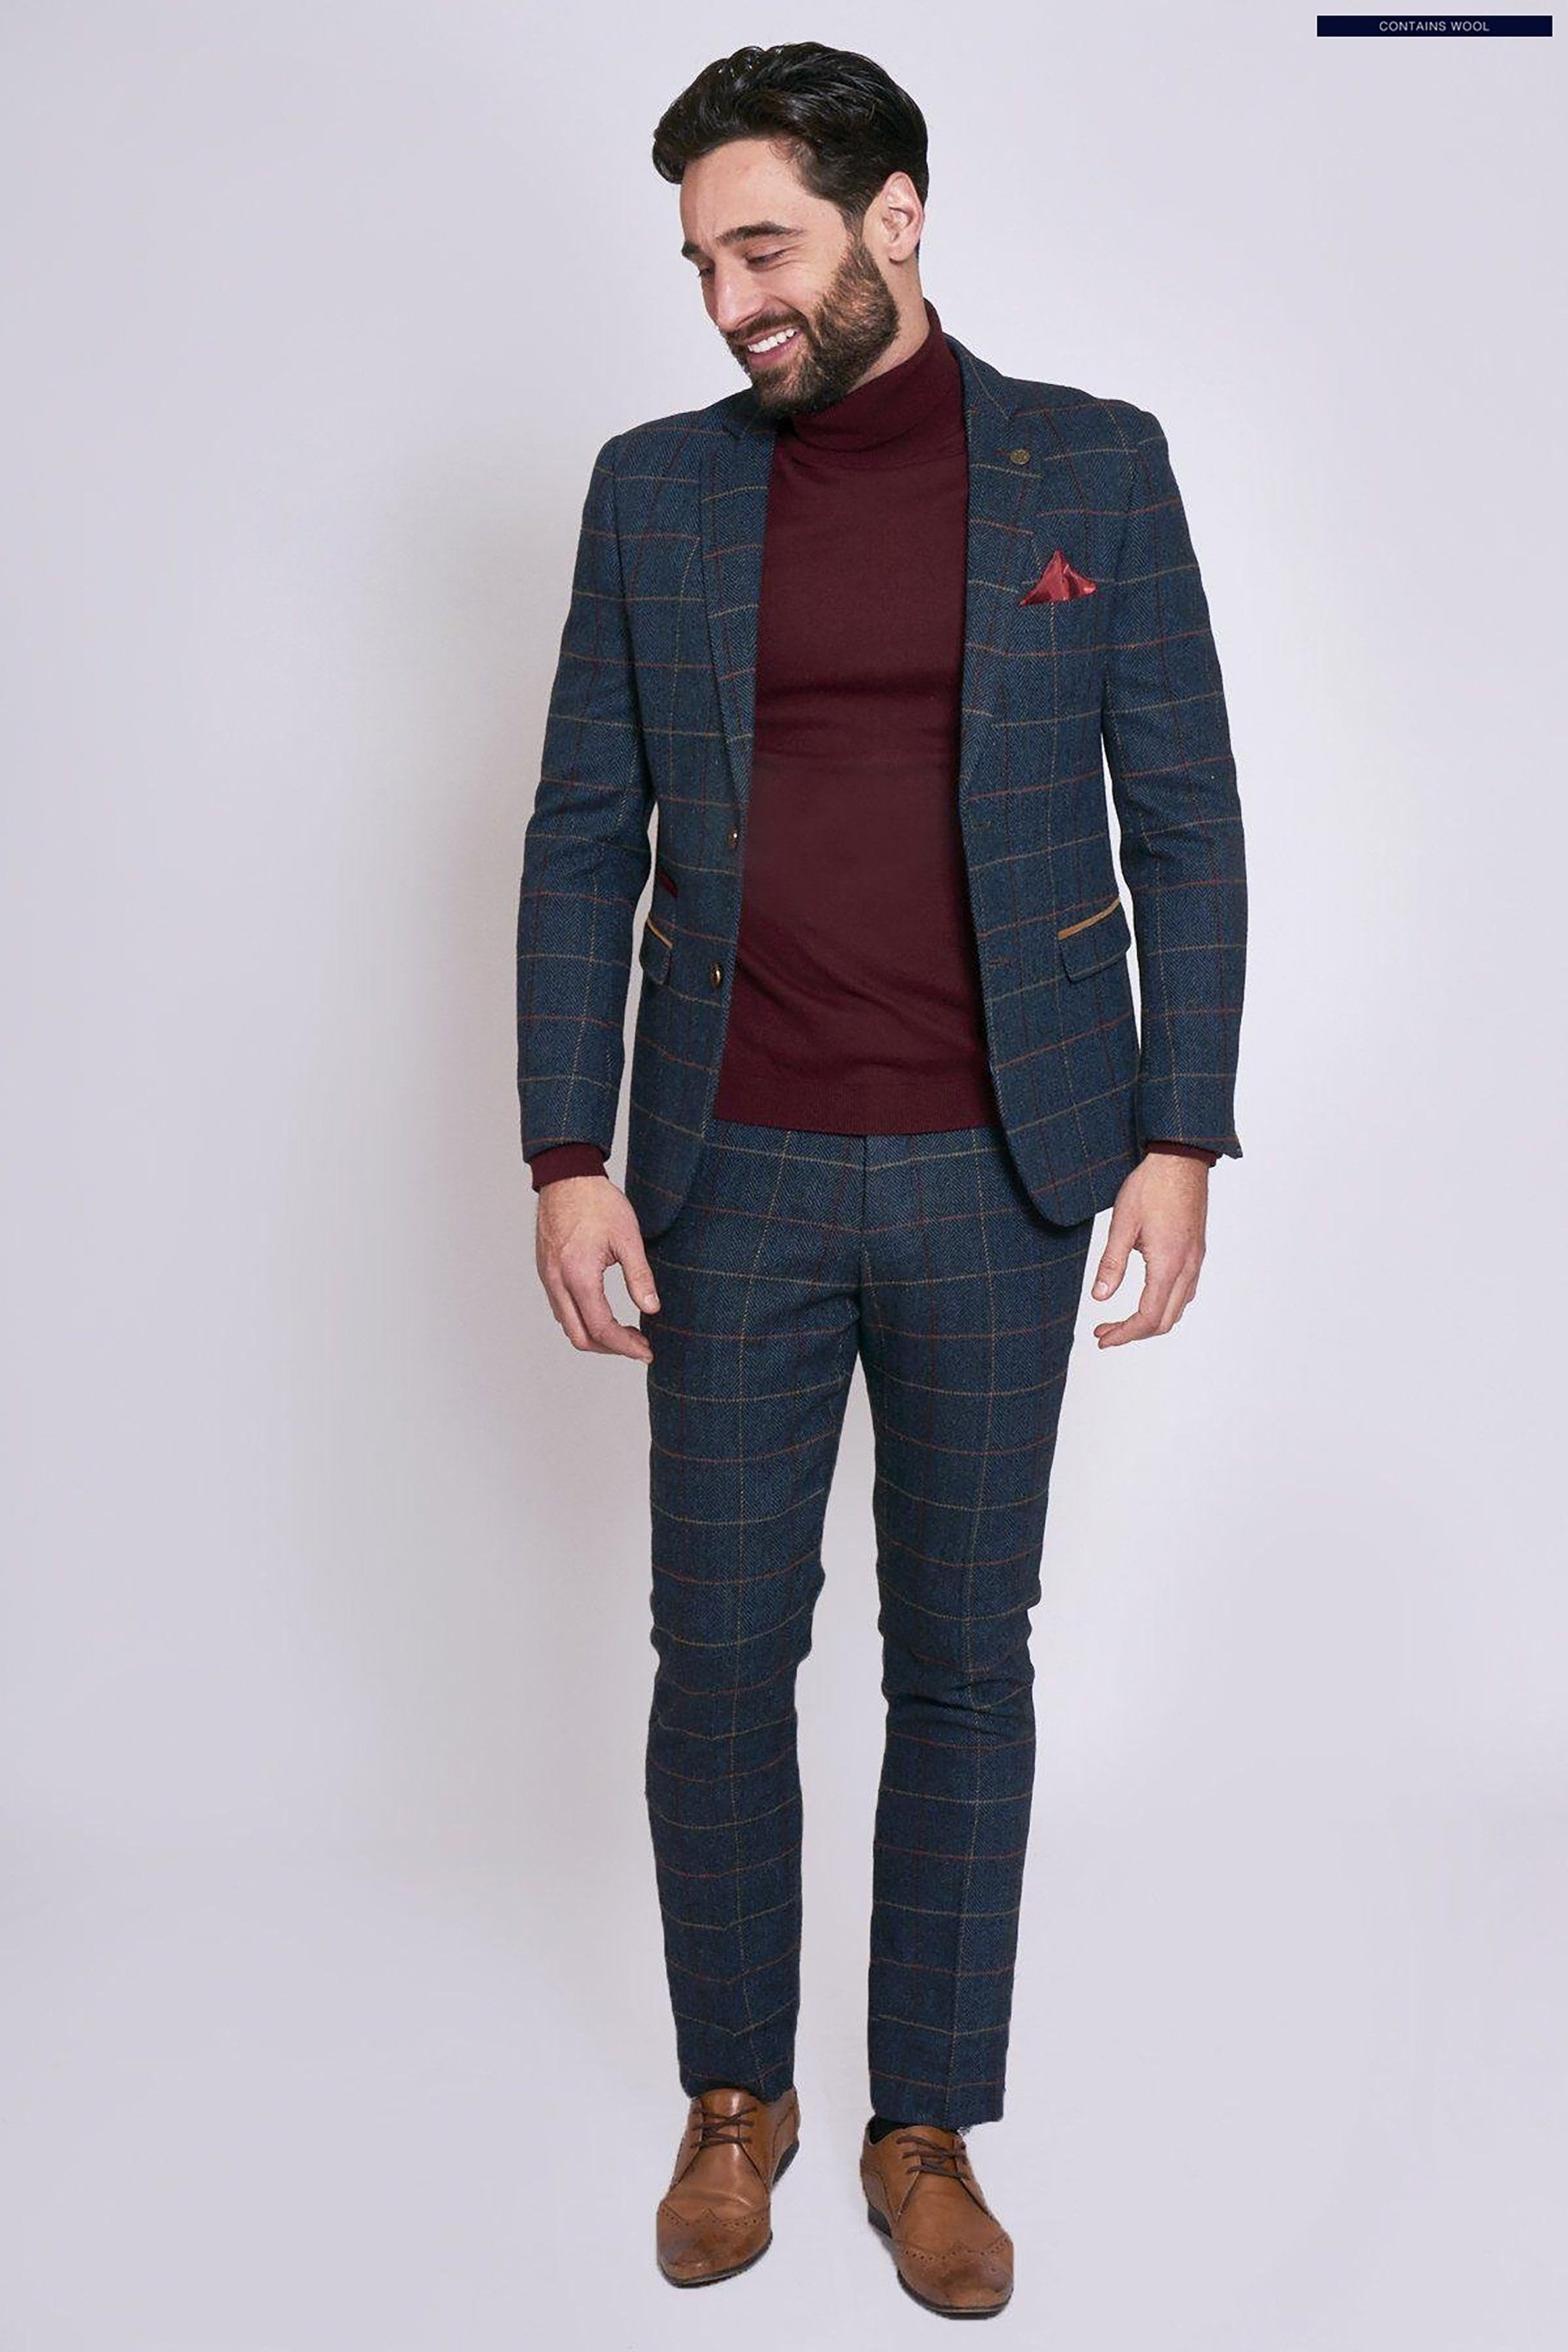 Eton Navy Blue Tweed Check Two Piece Suit Marc Darcy Fallen Hero